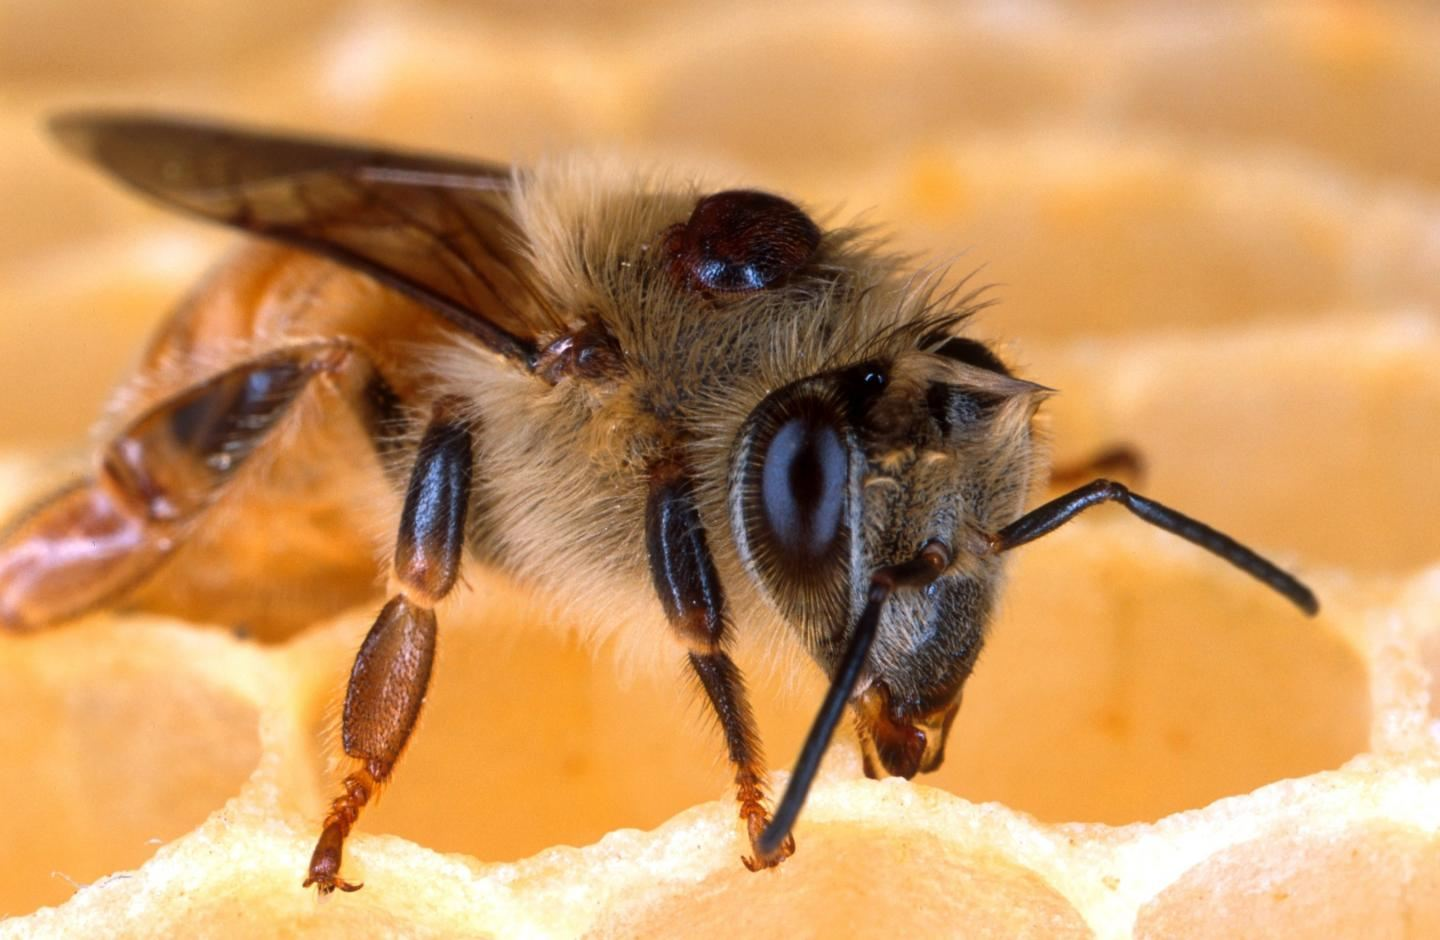 Une abeille infectée par le Varroa destructor